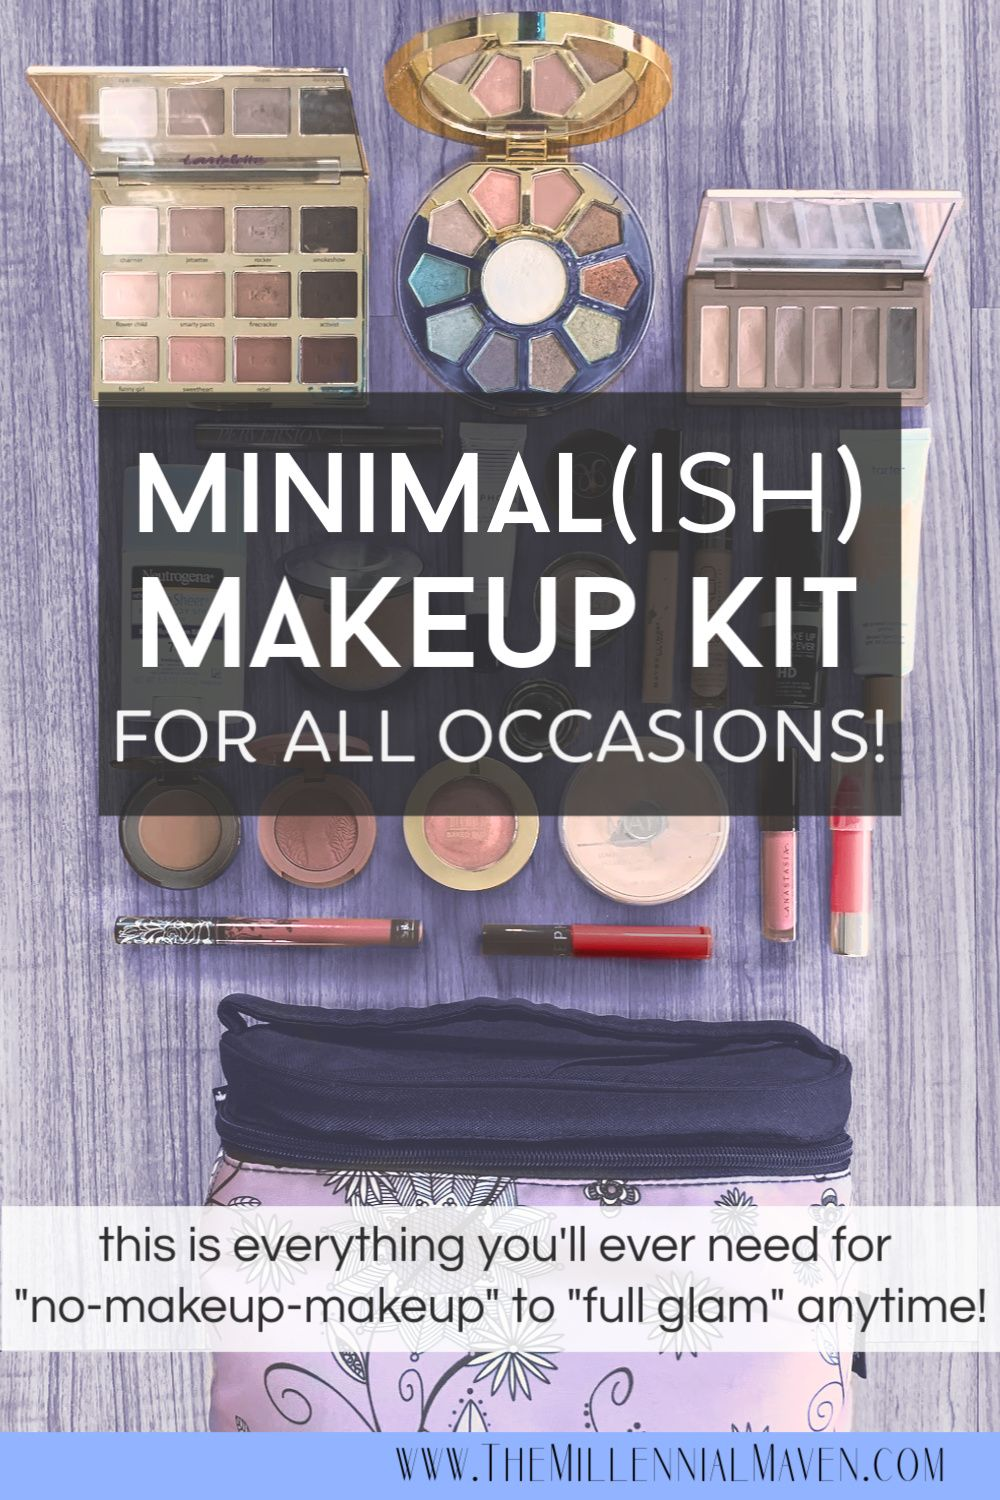 My Minimal(ish) Makeup Kit for *All Occasions* (Natural or